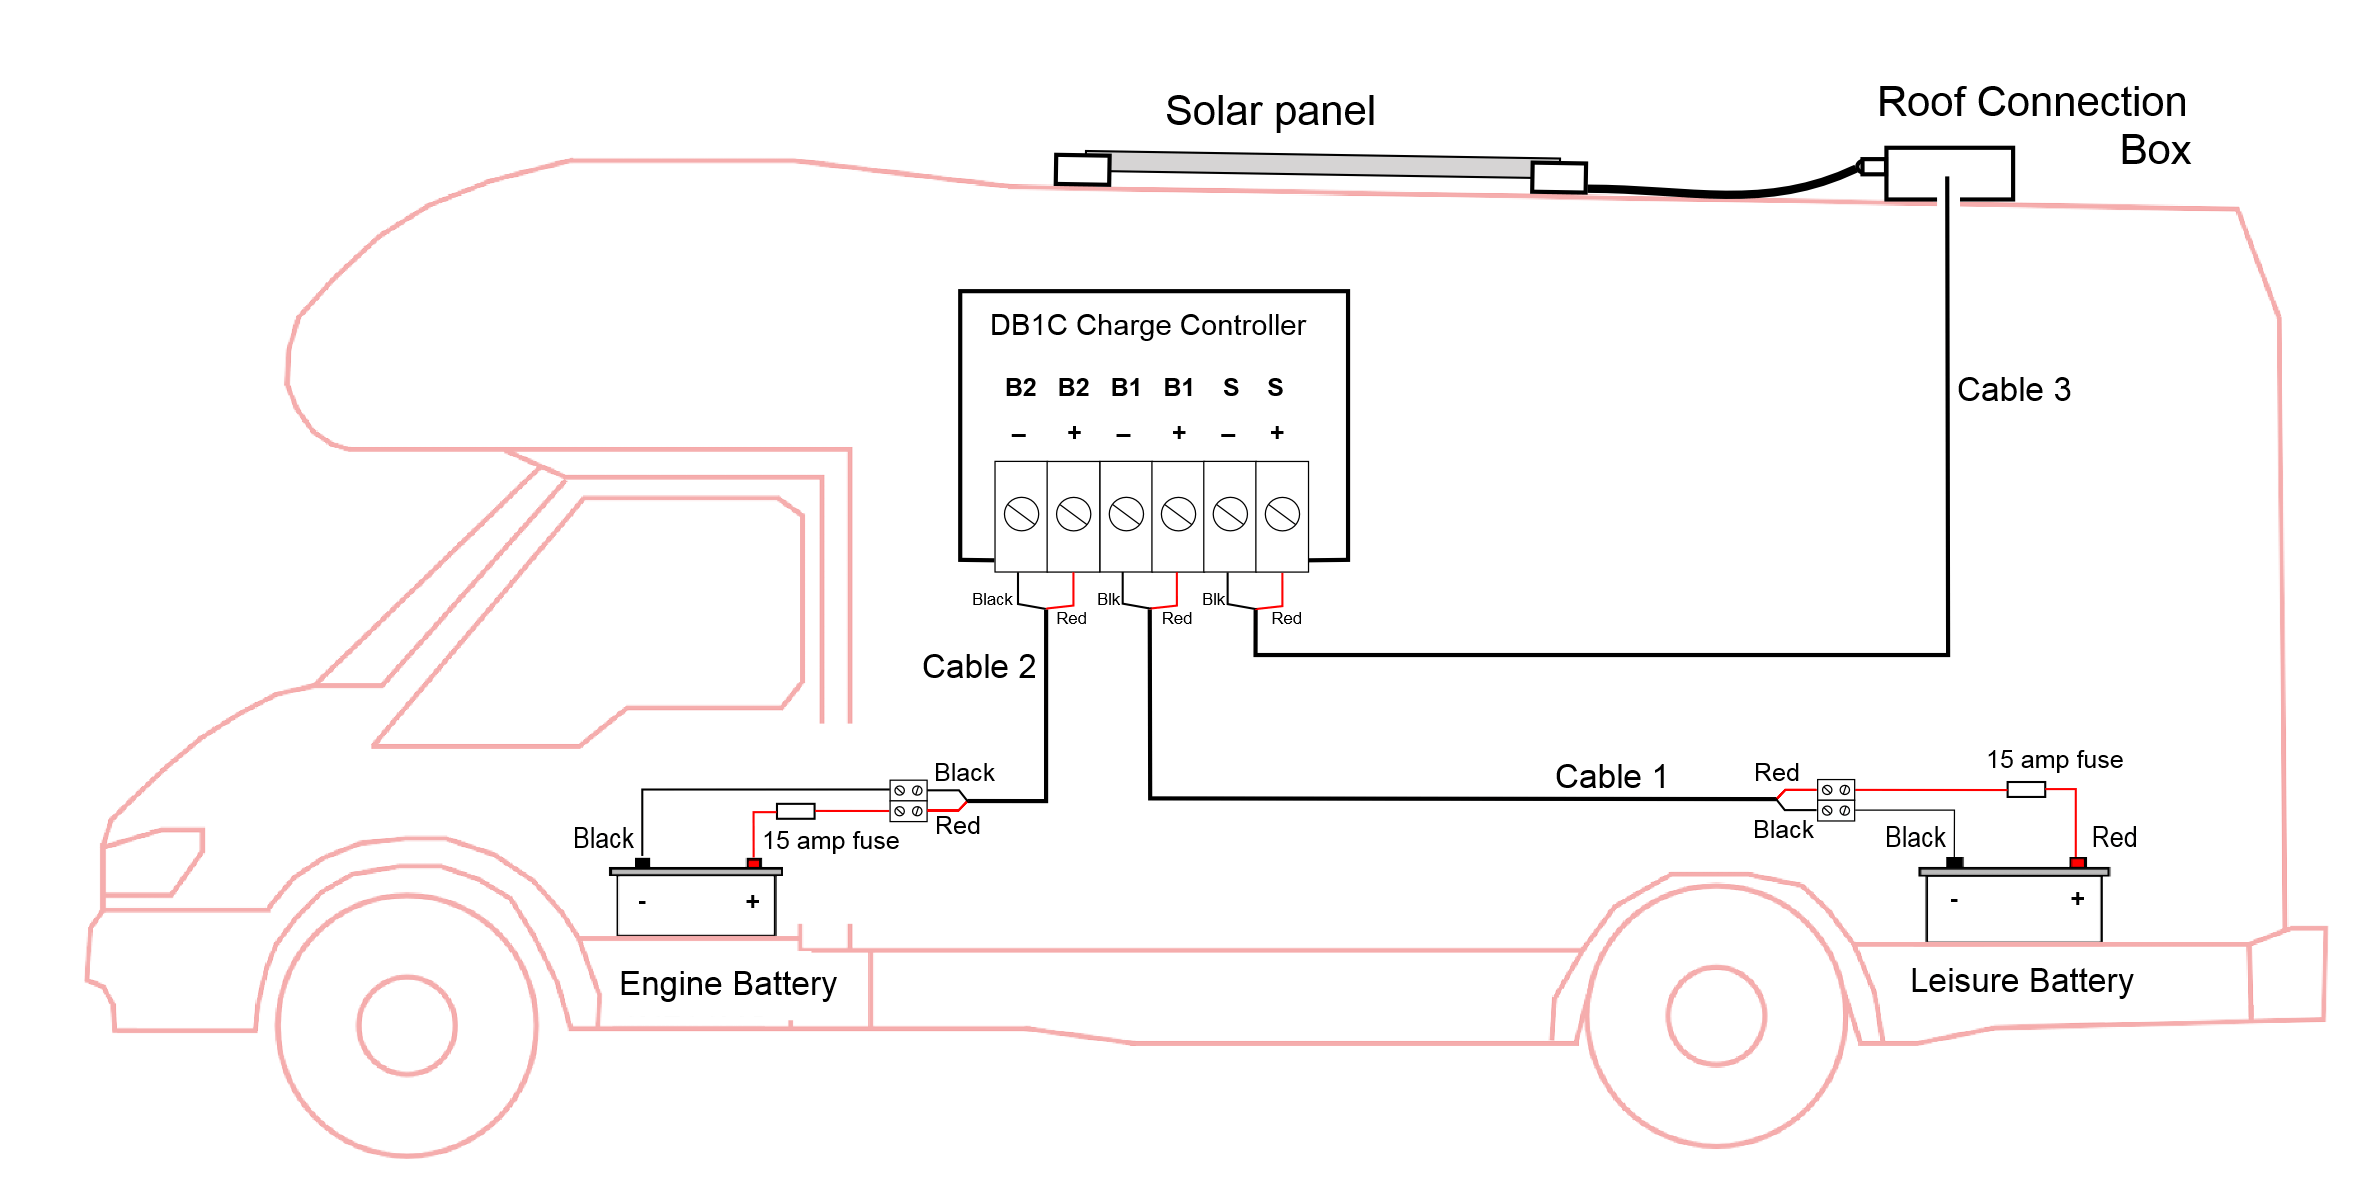 Casco 12v Power Schematic Wiring Diagram Library Dual Battery Solar Charge Controller By Sunworks Db1c 11